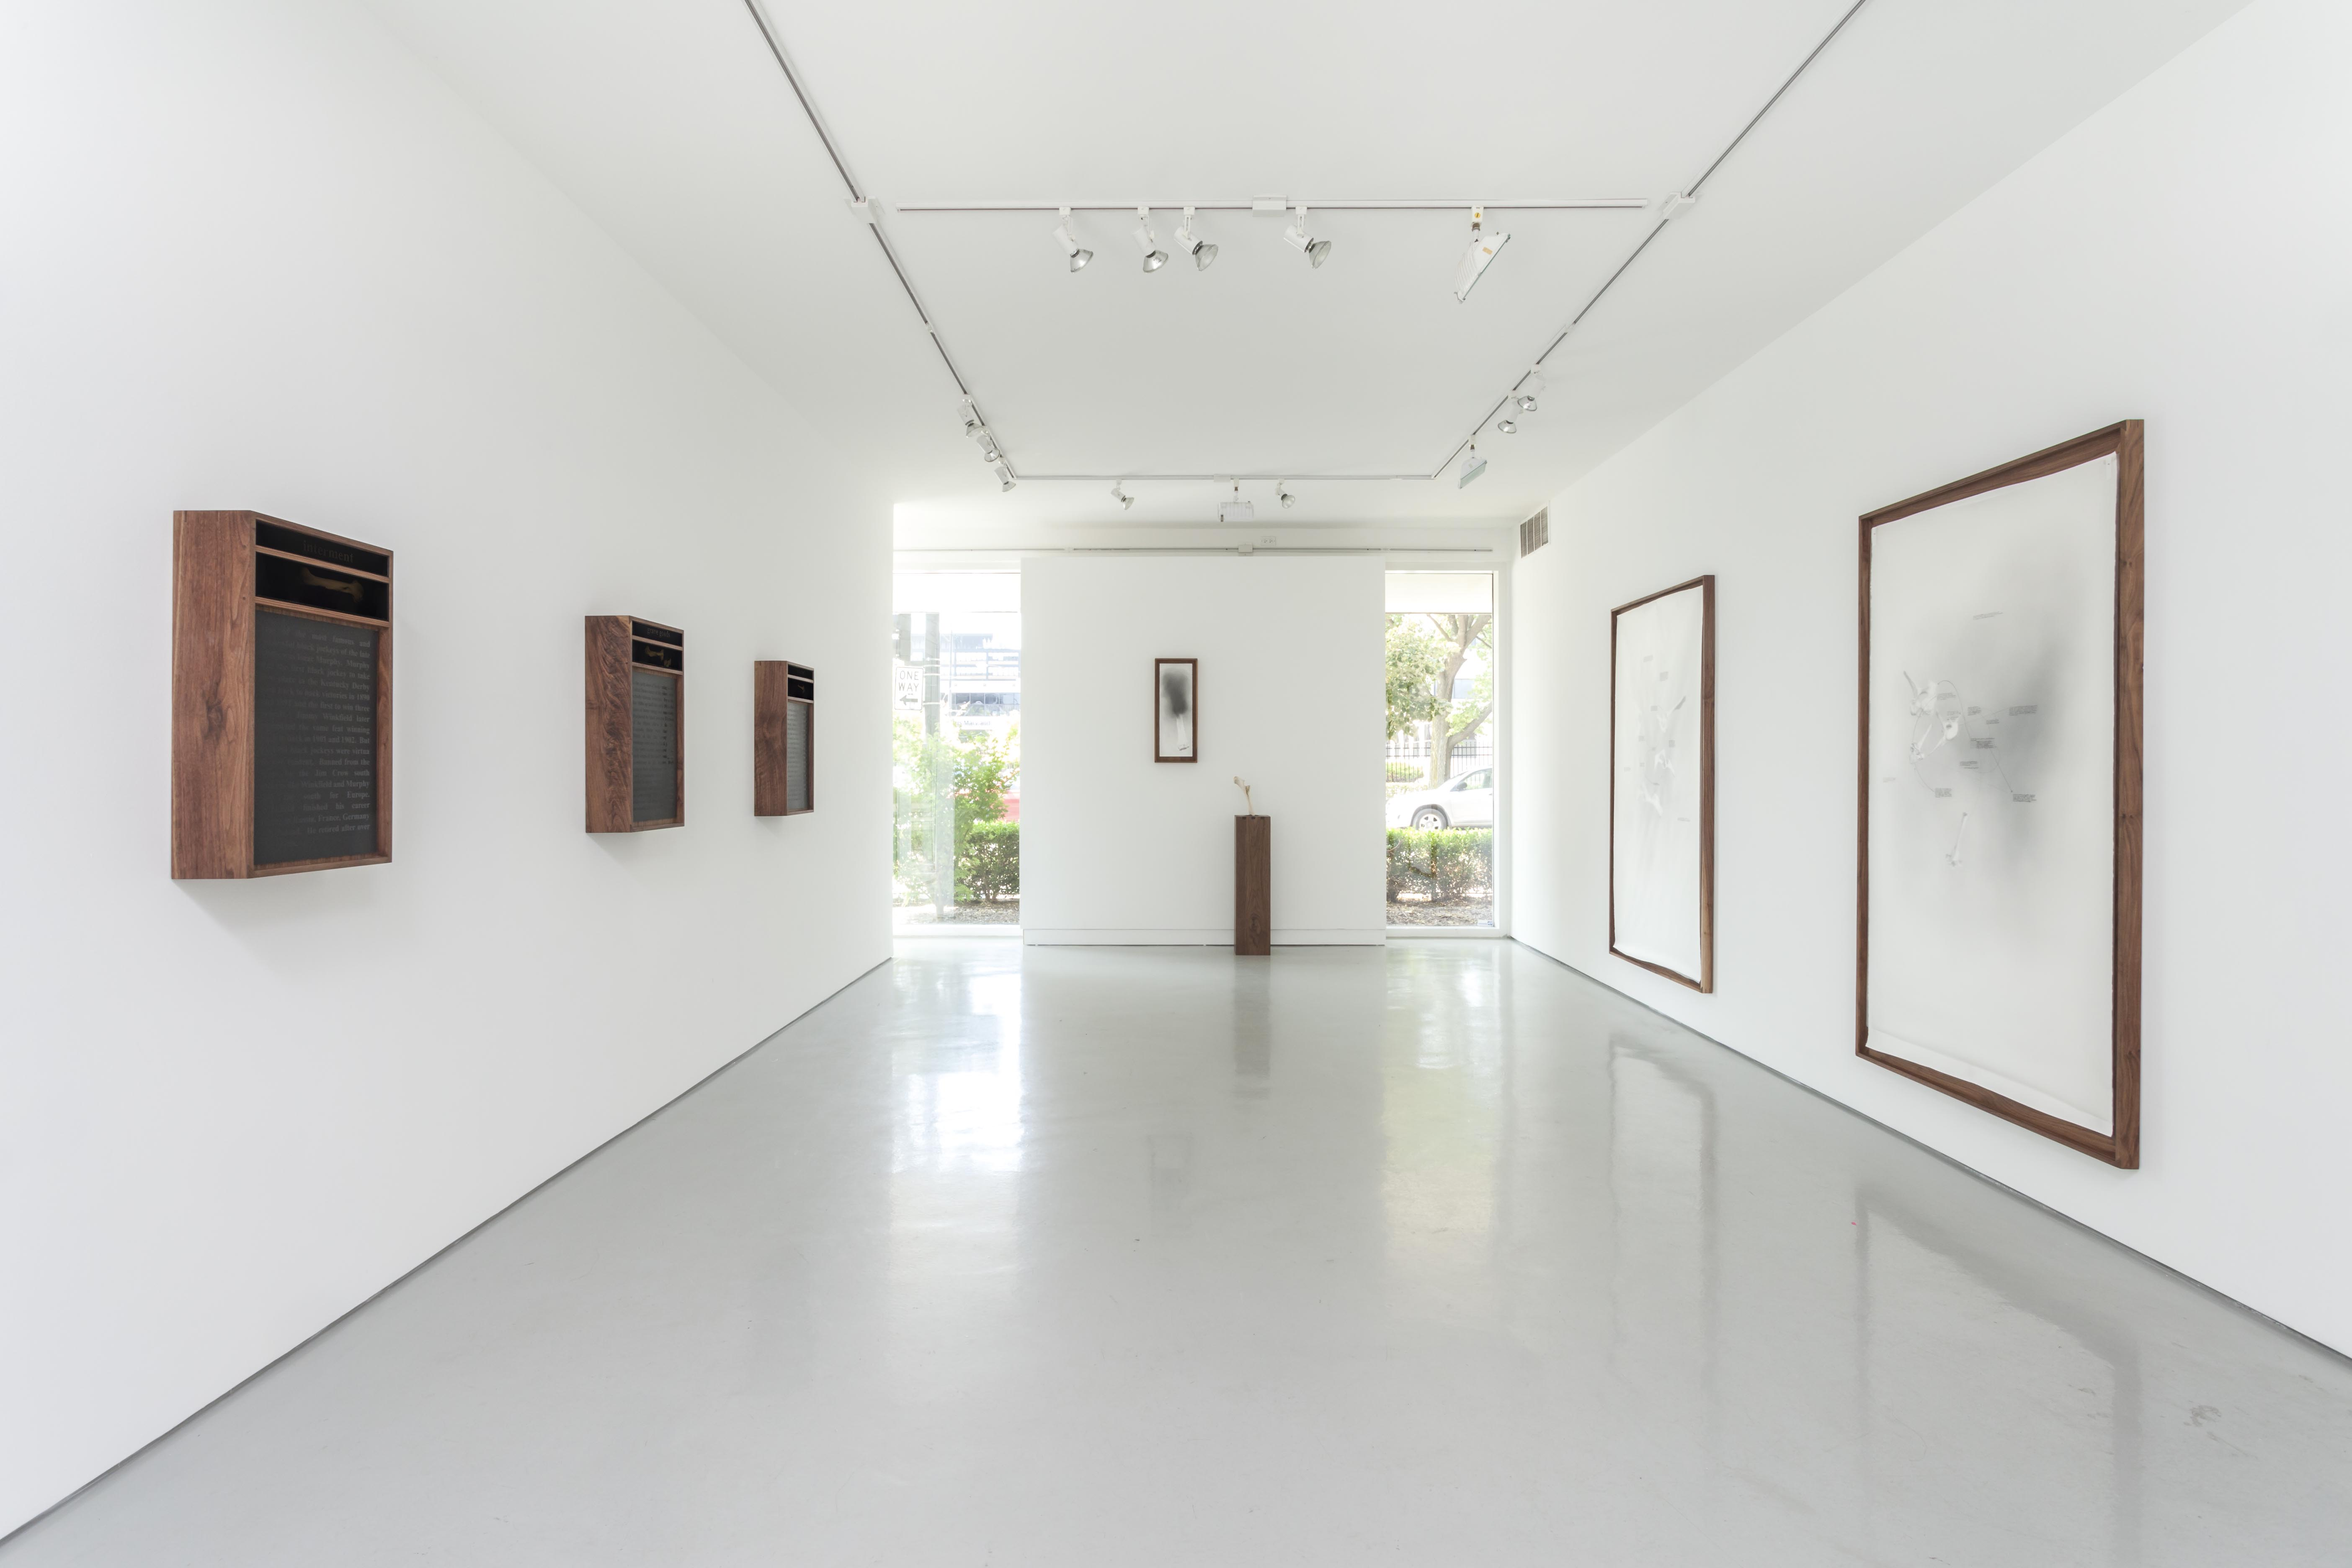 Installation View of Nate Young Exhibition. Six text and image artworks on white walls with one sculpture made of wood and bone.